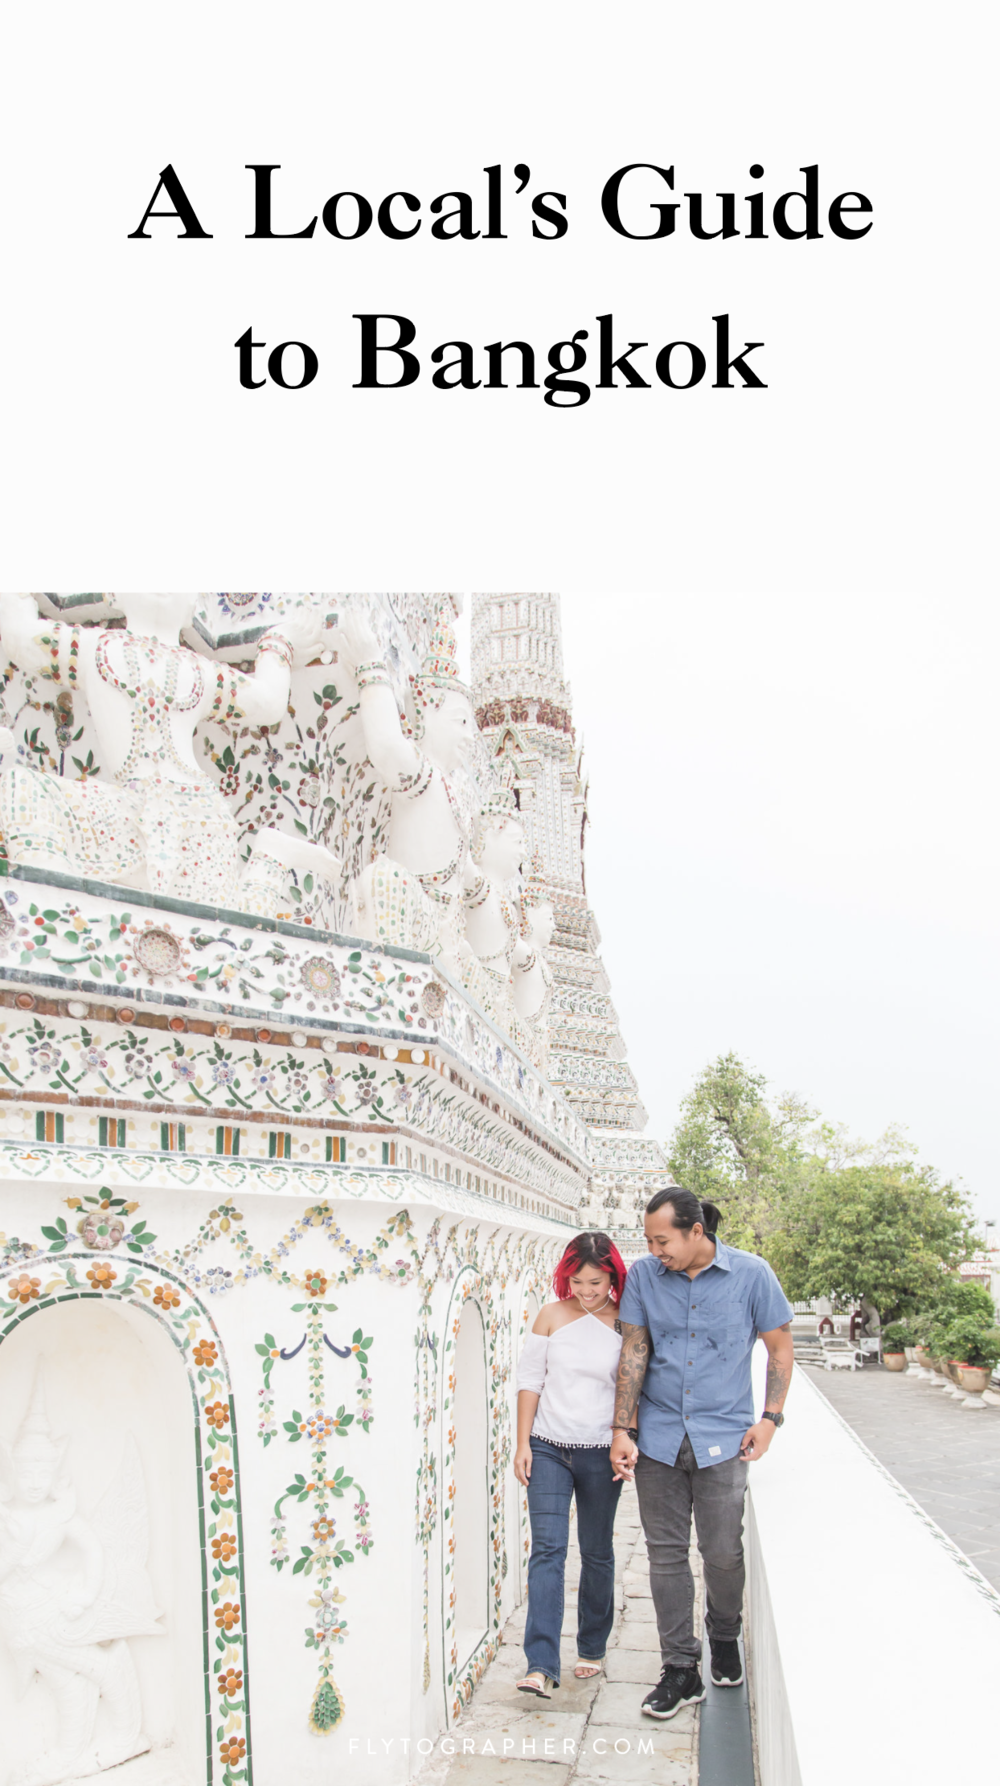 Get Flytographer's local tips on what to eat, see and do in beautiful Bangkok! | Travel + Vacation Photographer | Family Vacations | Engagement Proposals | Honeymoons | Anniversary Gifts | Bachelorette Ideas | Solo Traveller Tips |  Flytographer captures your travel memories - everything from surprise proposals, honeymoons, family vacations, and more. Our photographers also act as informal tour guides and provide fun local tips to our customers, showing them an area of a city they may not have explored without Flytographer. Book your photographer at 1.888.211.7178 or visit our website at www.flytographer.com/book